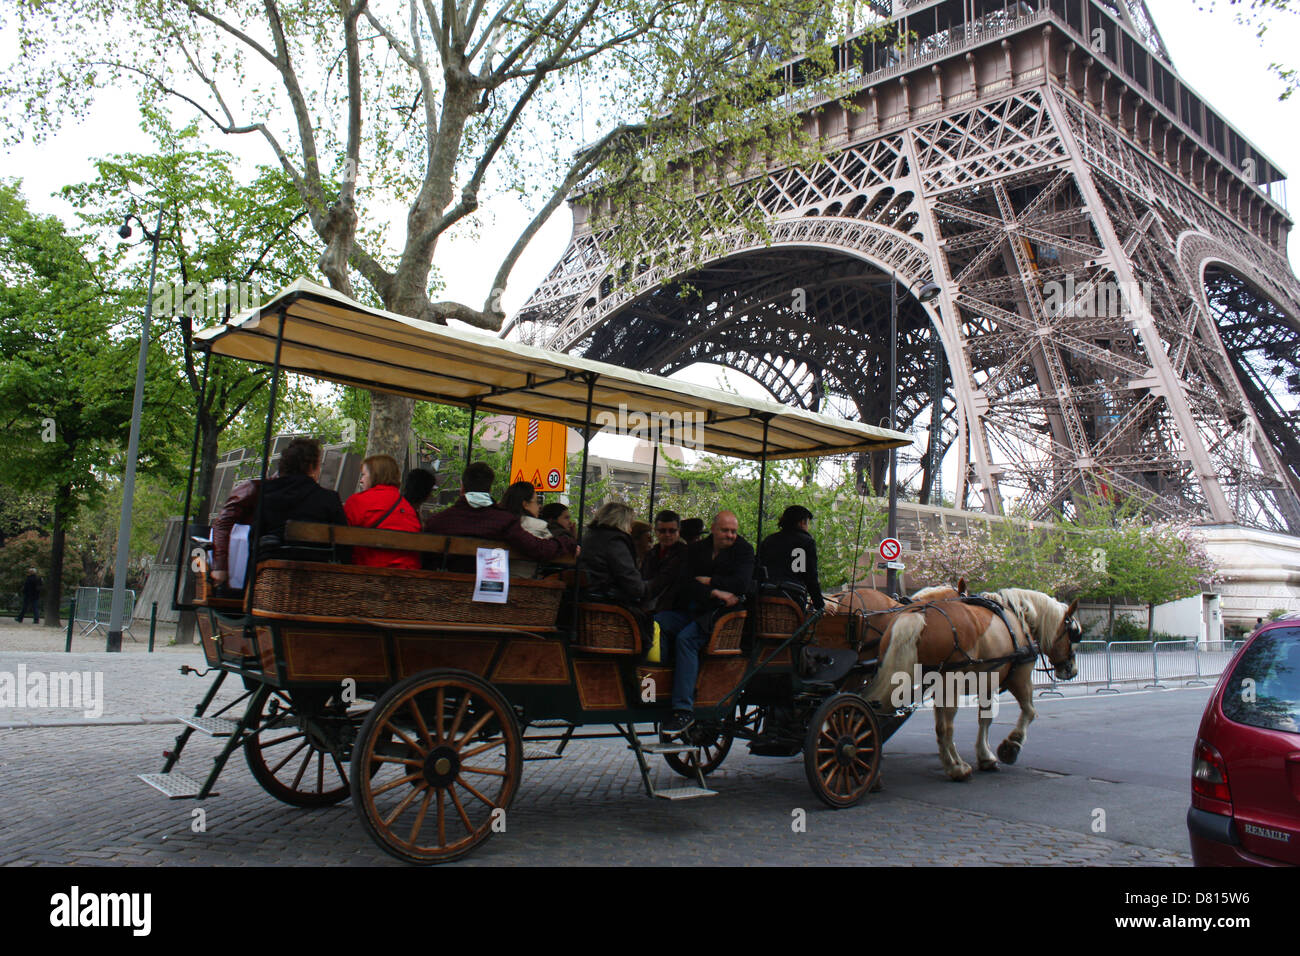 Horse chariot with passengers in front of Eiffel Tower, Paris, France Stock Photo